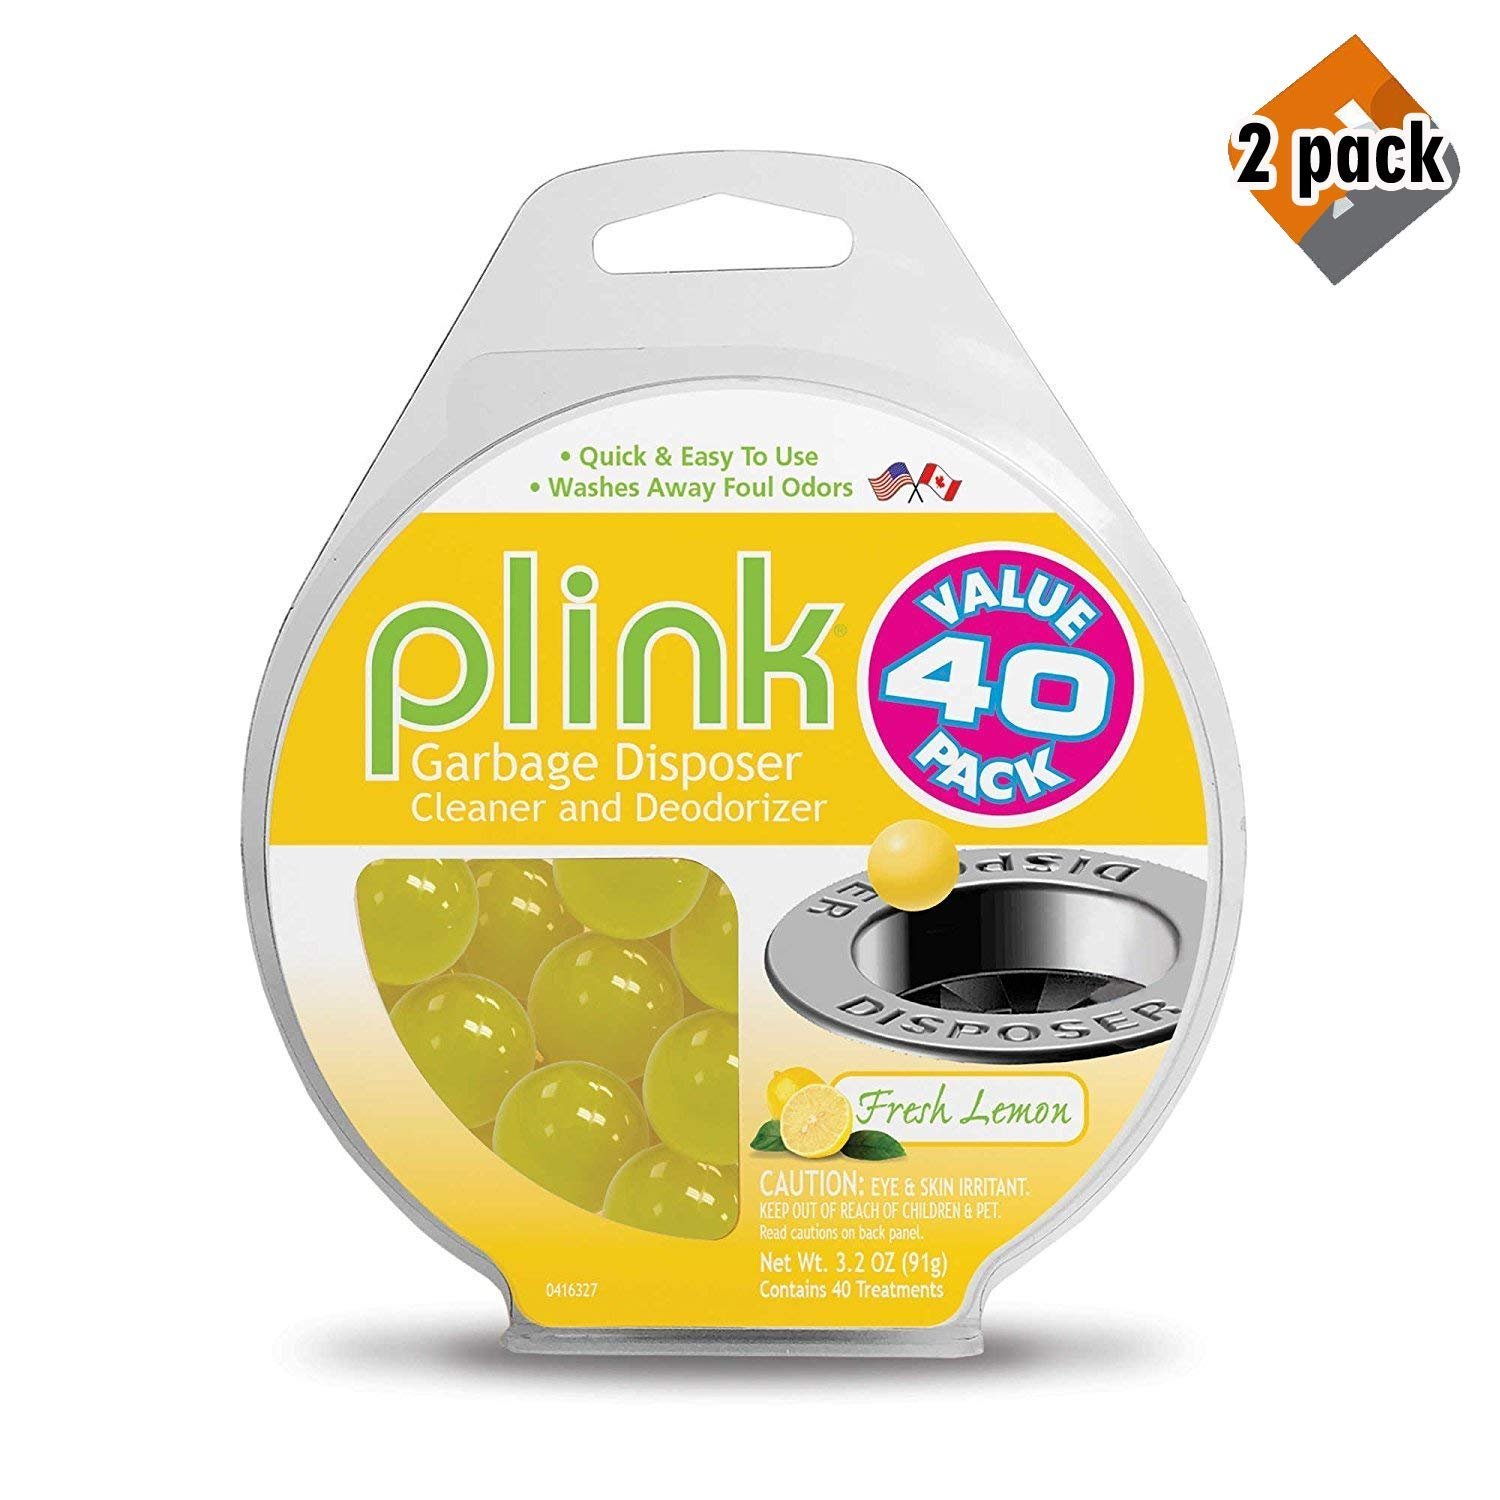 Plink 40-Pack Lemon-Scented Garbage Disposal Cleaner and Deodorizer | Includes 40 treatments |Made in USA, 2 Pack by Plink